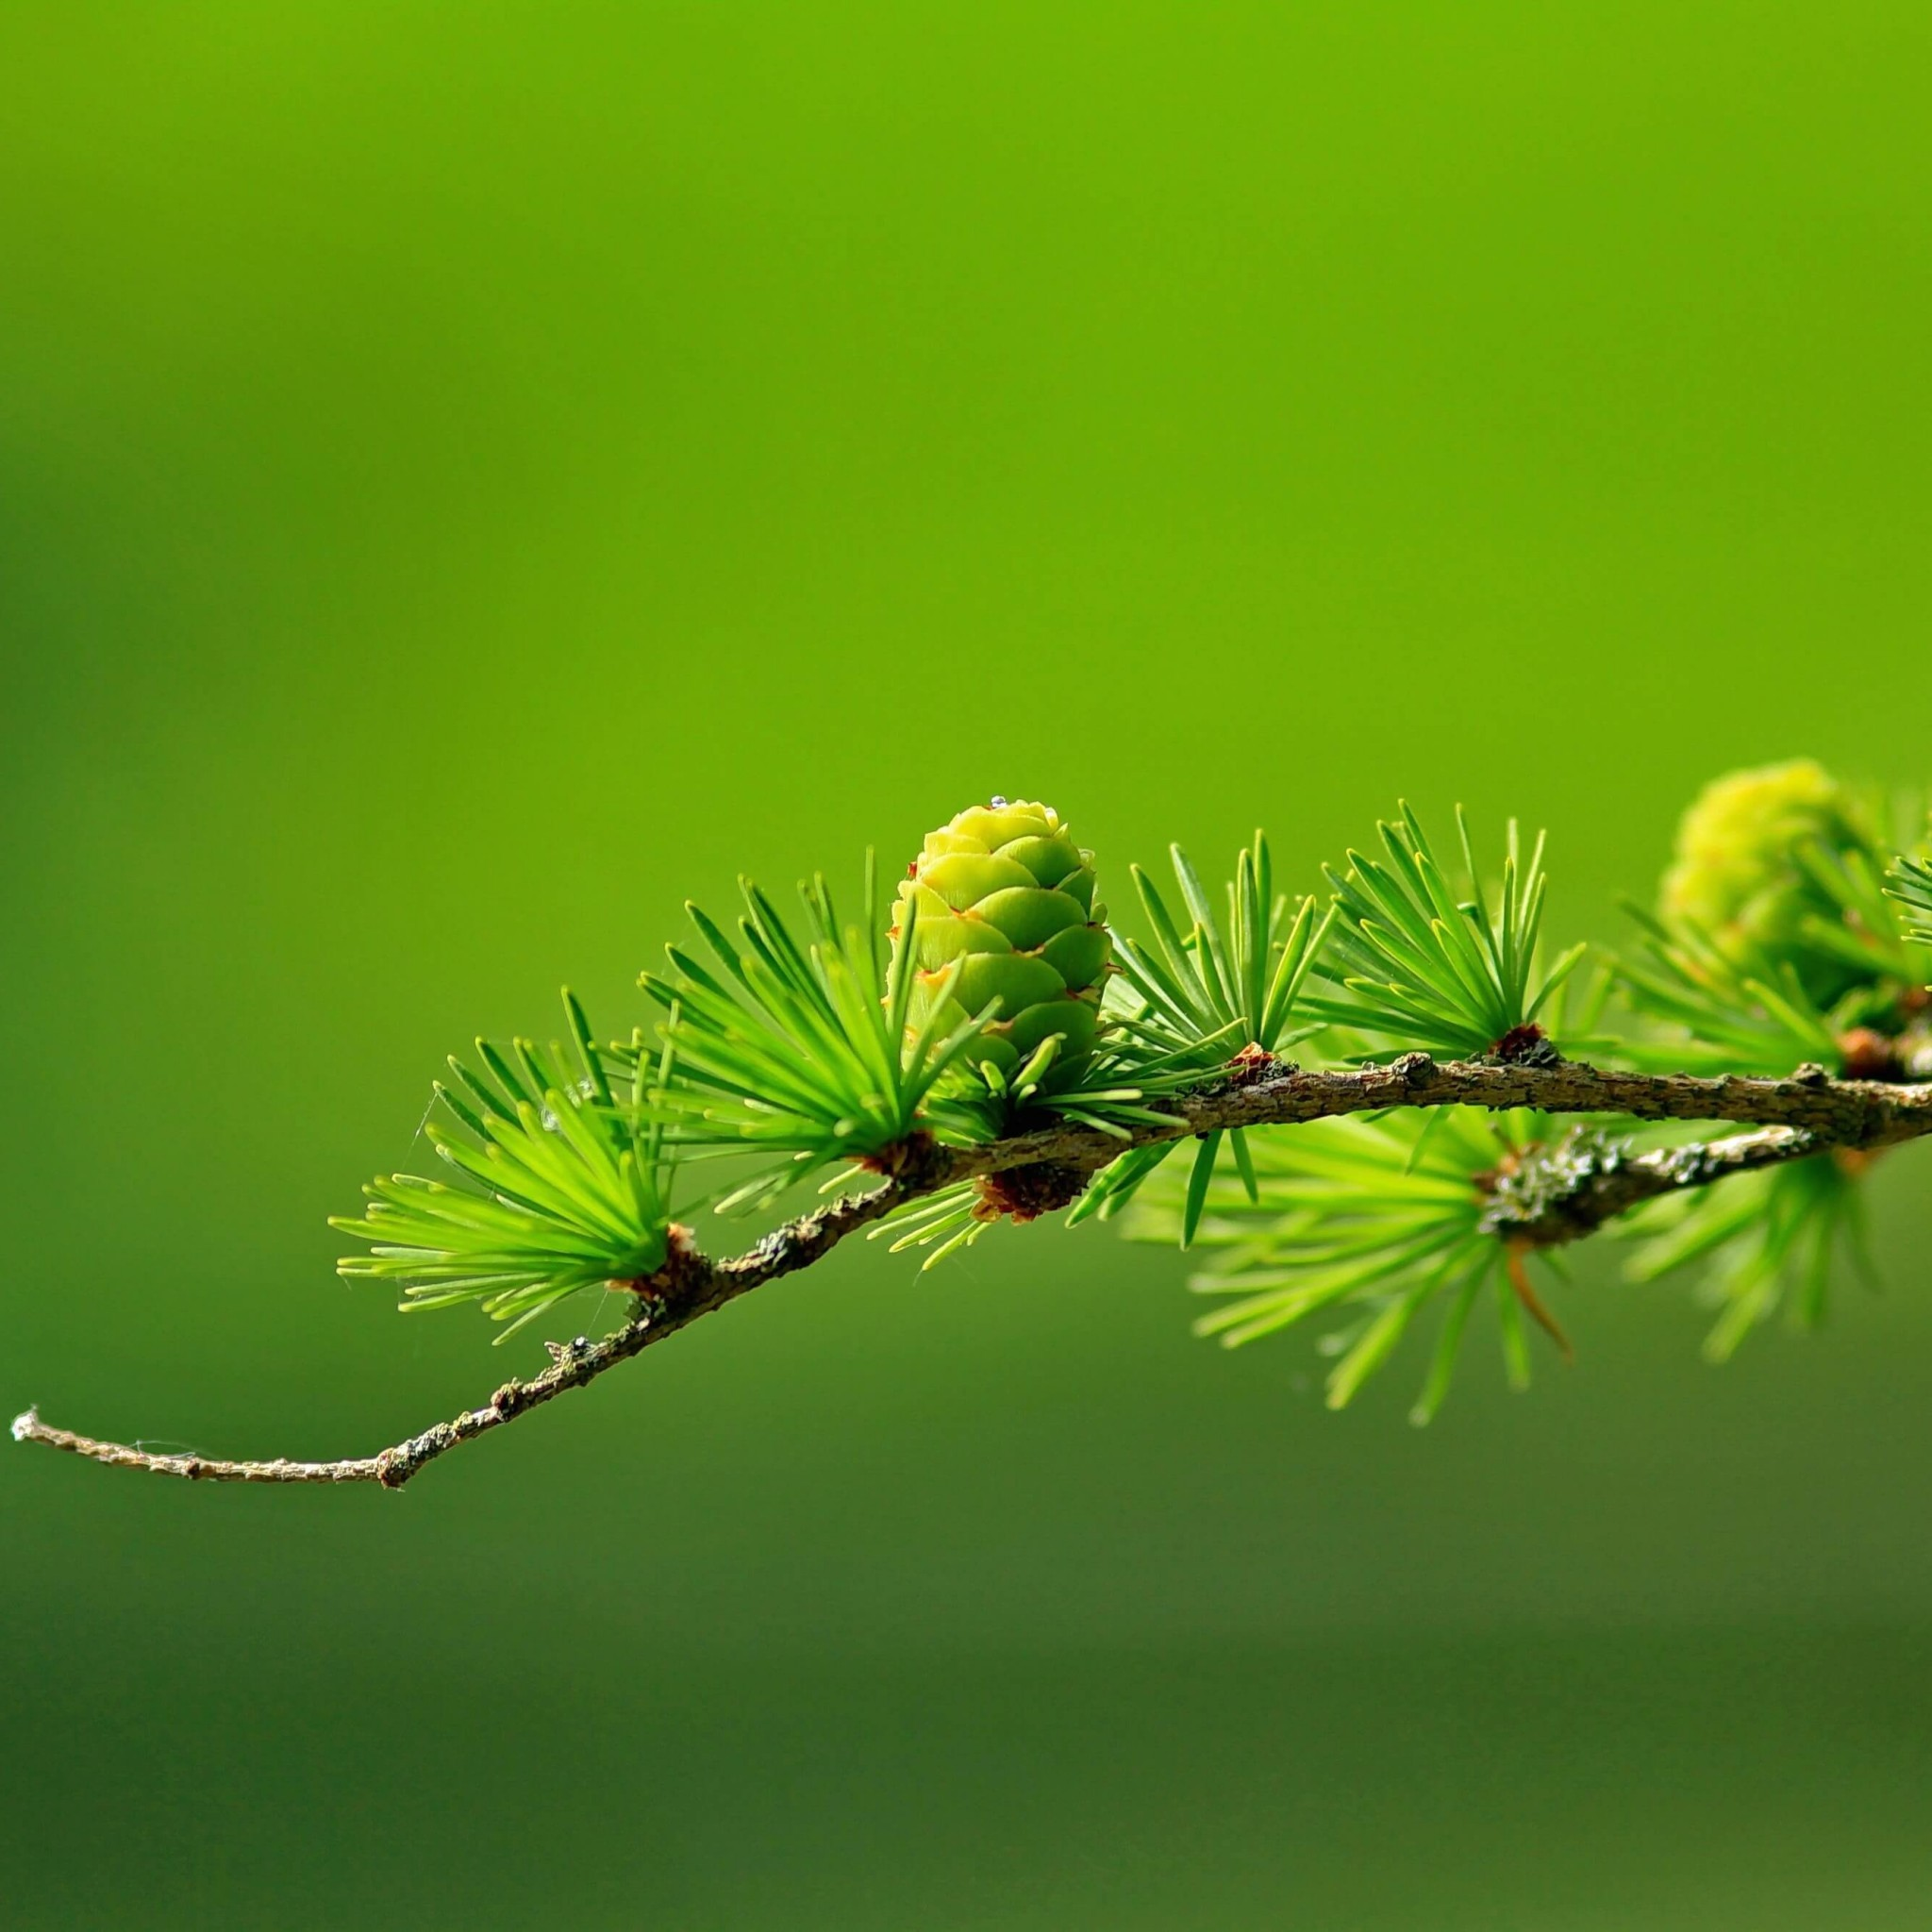 Branch of Pine Tree Wallpaper for Google Nexus 9